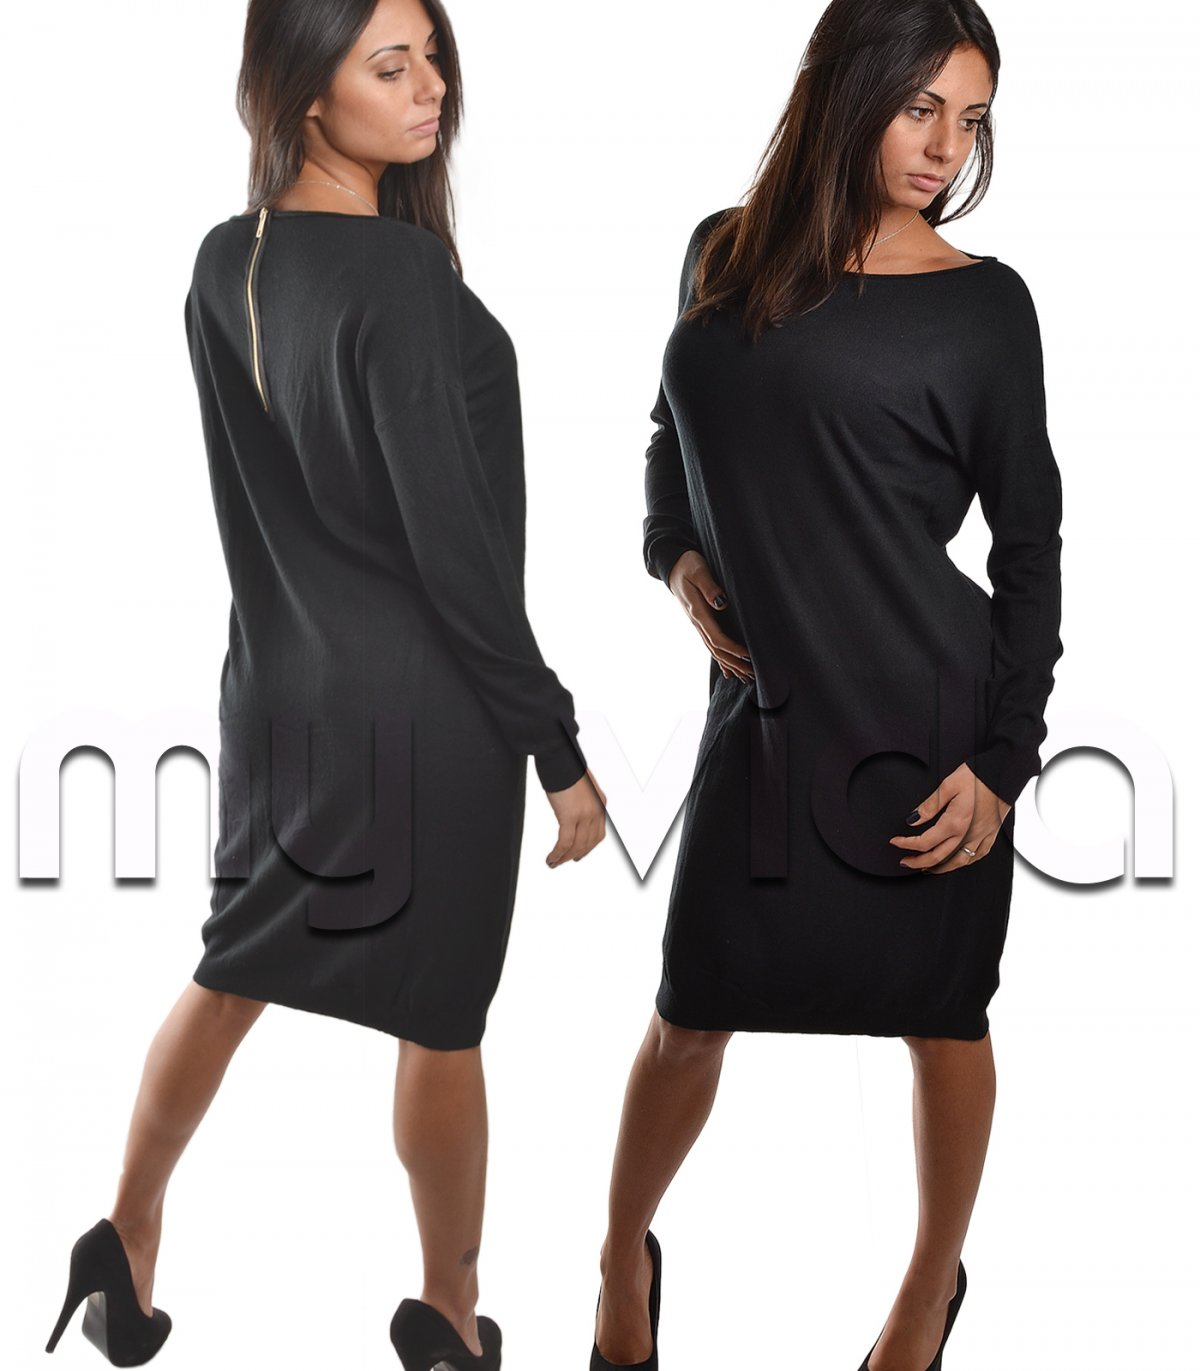 Woman's collection dress maglione donna girocollo casual